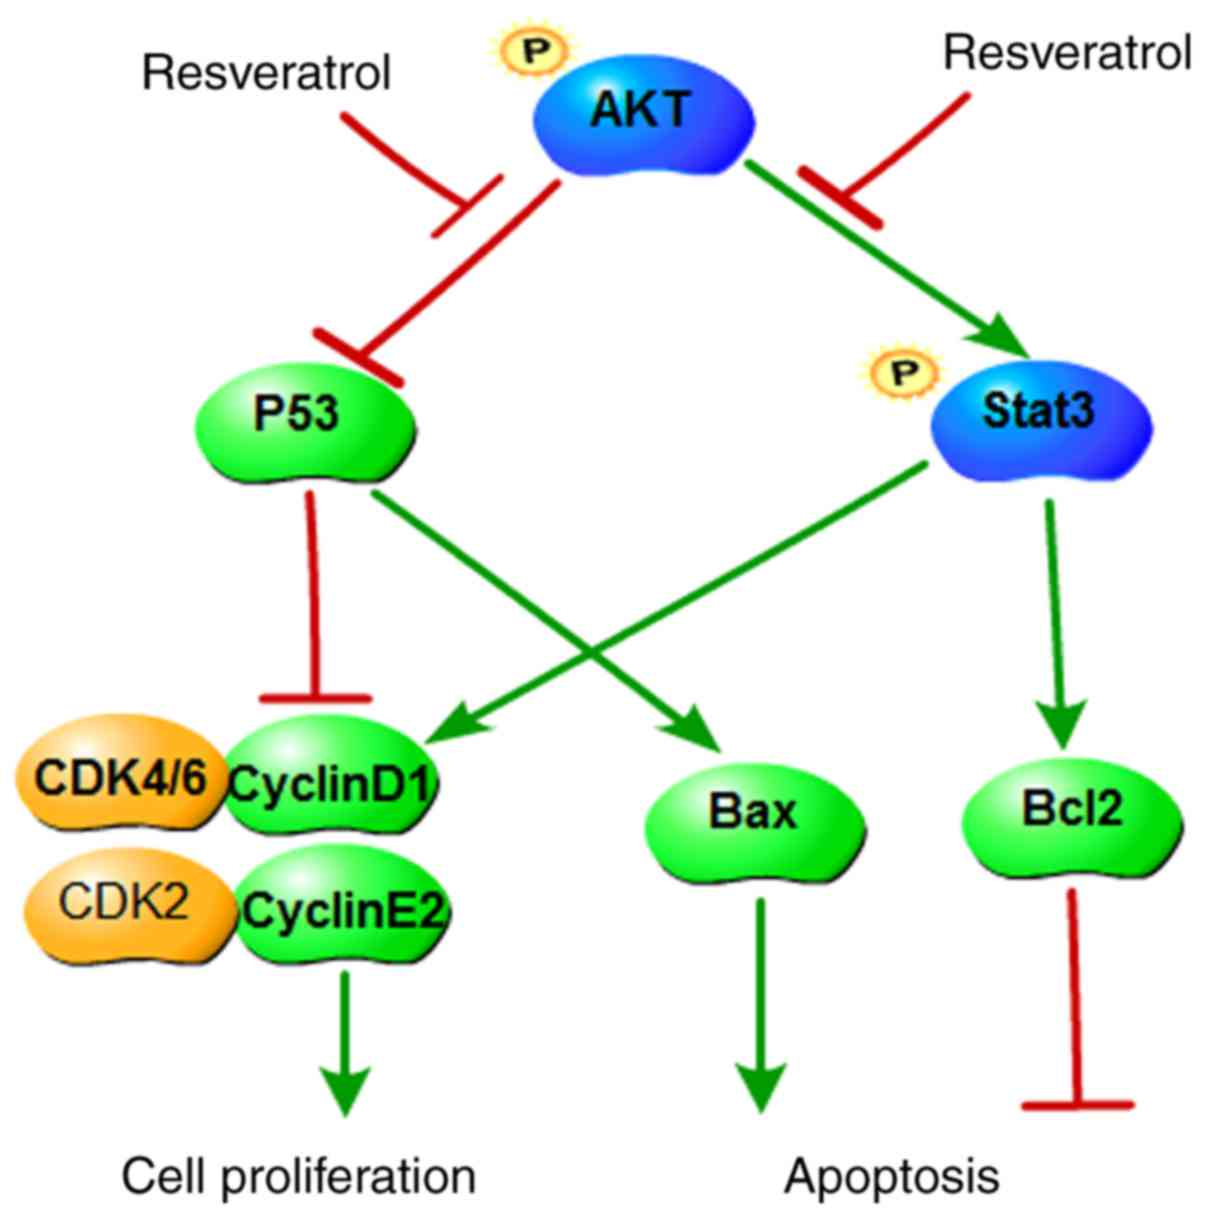 Resveratrol Suppresses Colon Cancer Growth By Targeting The Akt Stat3 Signaling Pathway